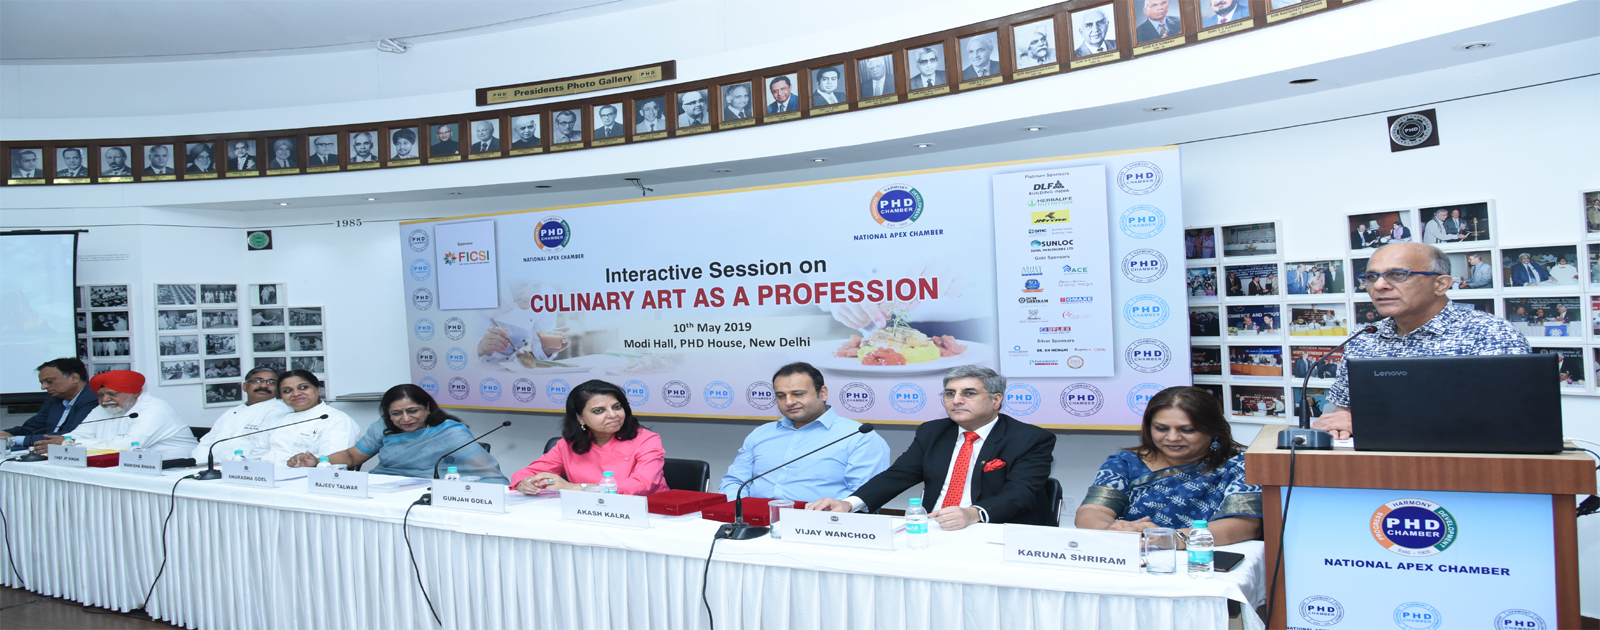 Interactive Session on Culinary Art as a Profession